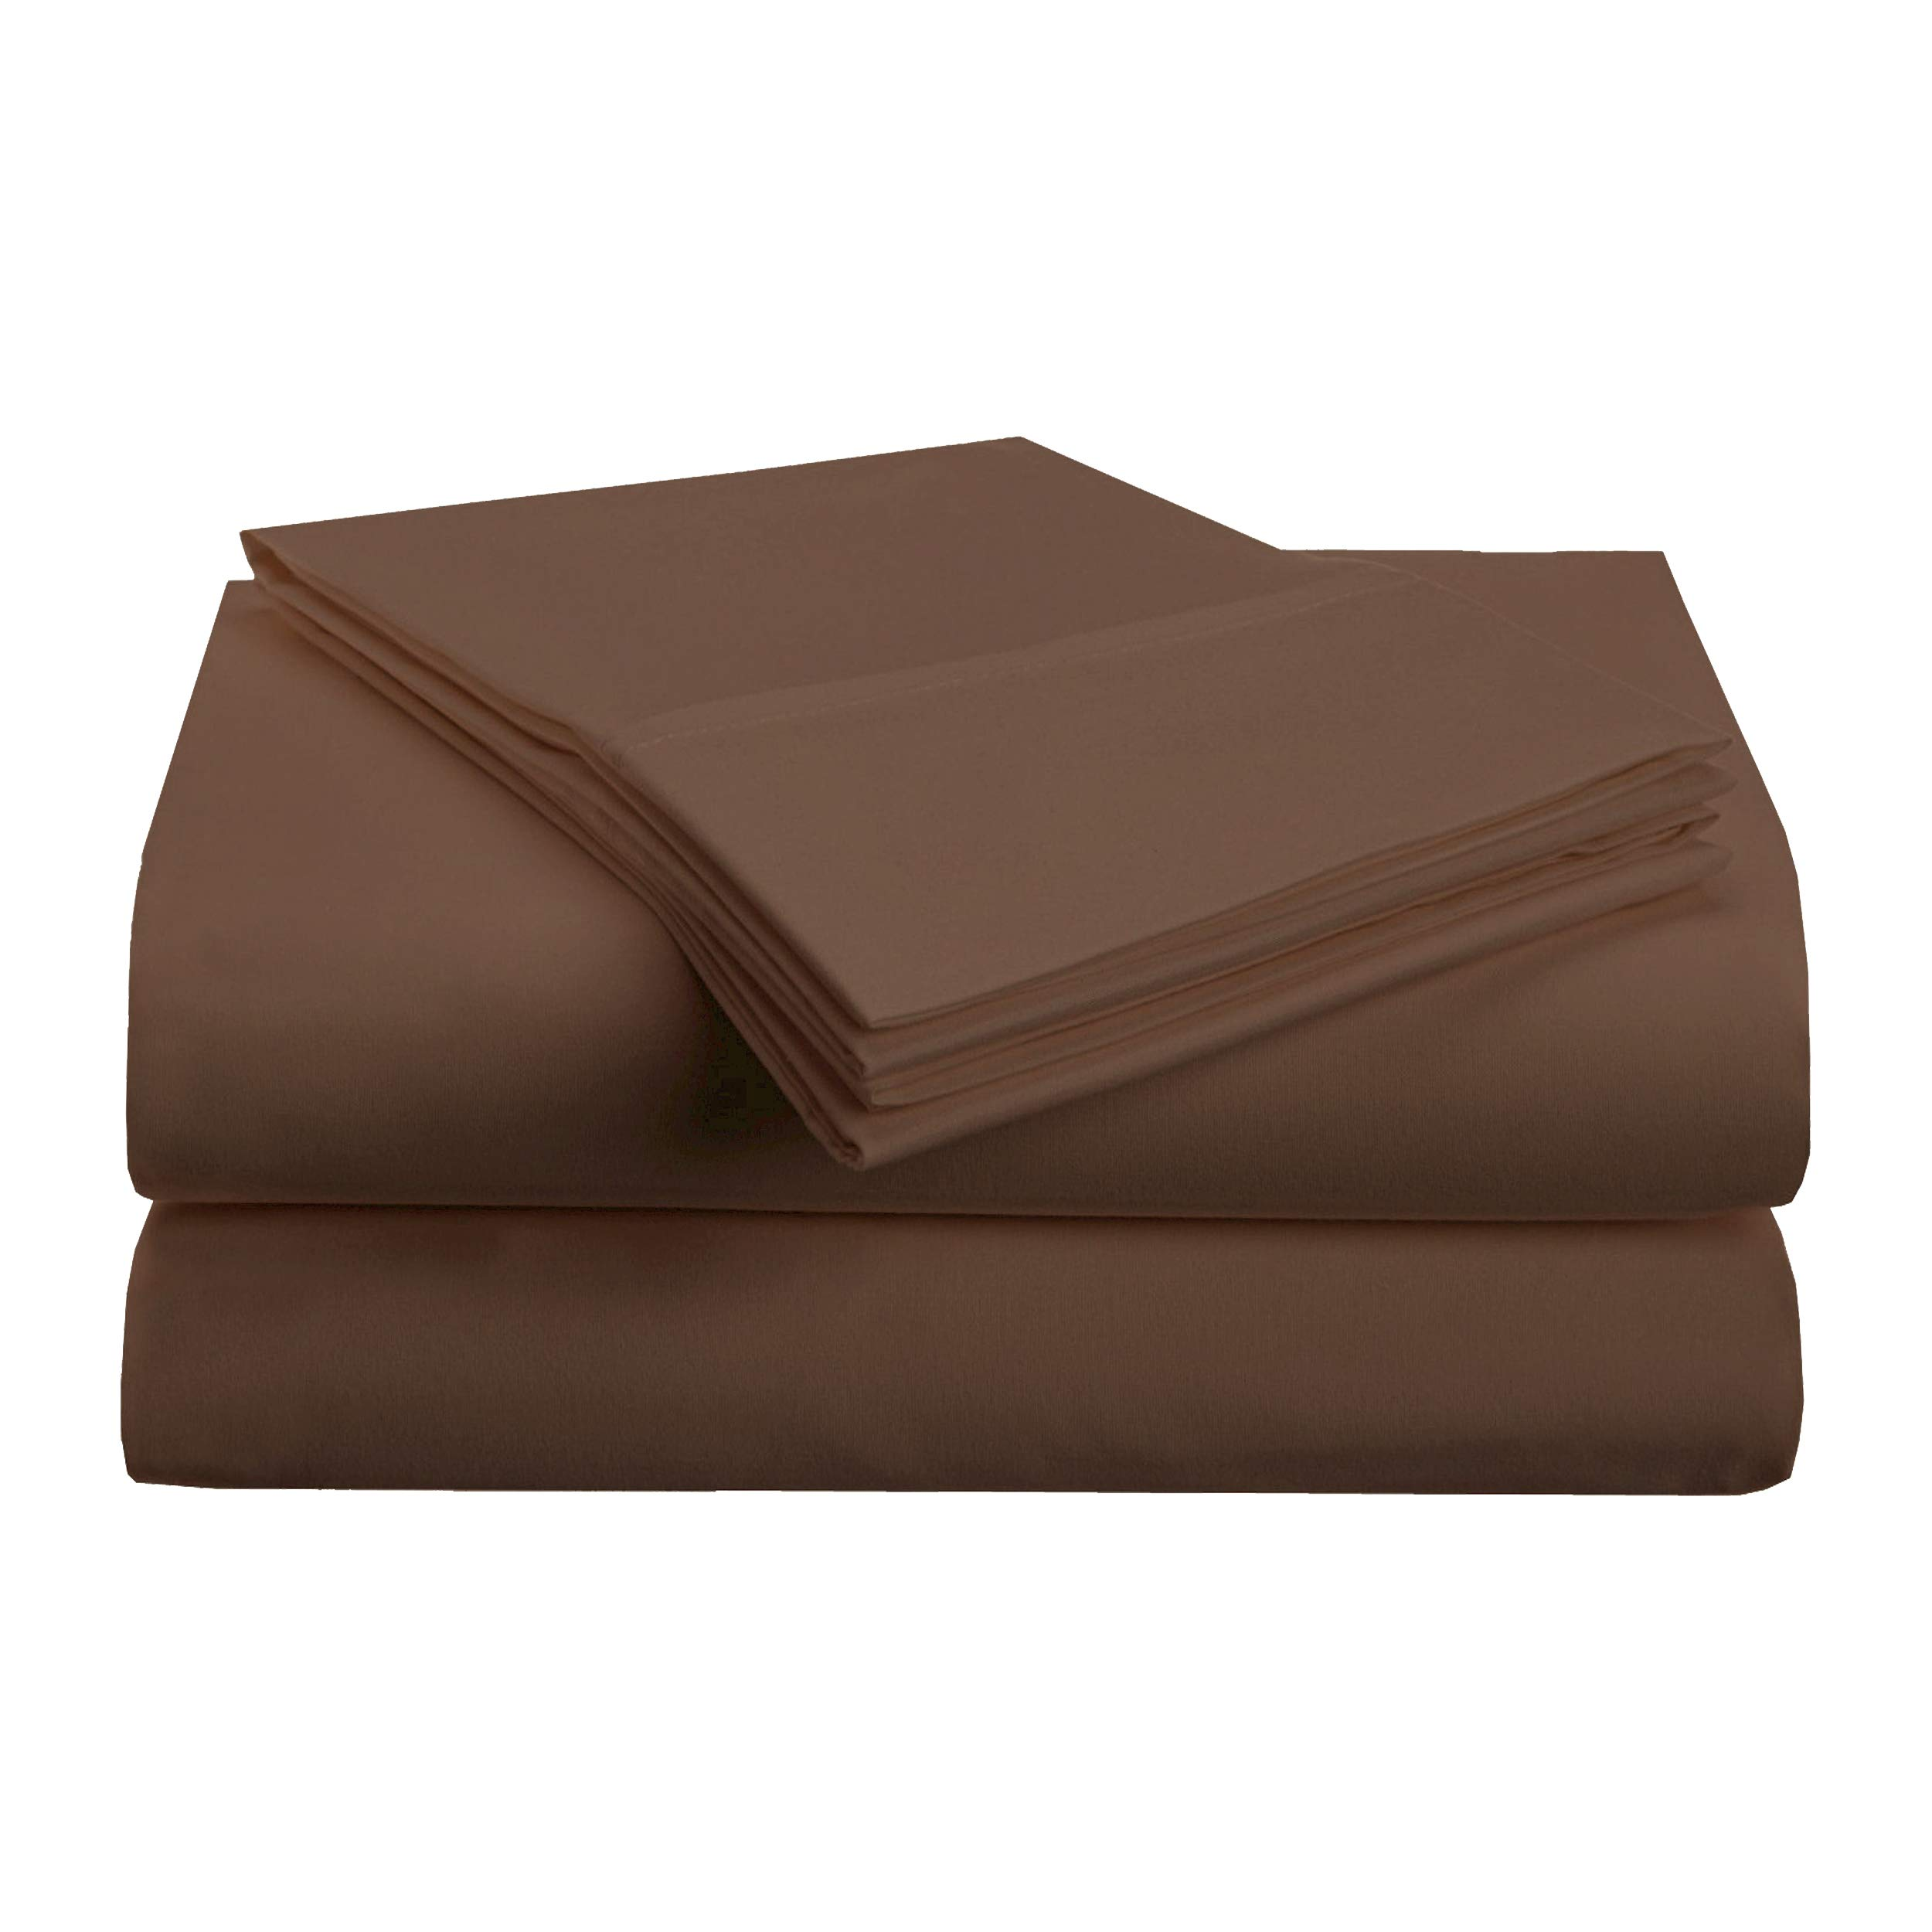 Superior 1500 Series Premium Quality 100% Brushed Soft Microfiber 3-Piece Luxury Deep Pocket Cooling Bed Sheet Set, Hypoallergenic, Wrinkle and Stain Resistant - Twin XL, Mocha